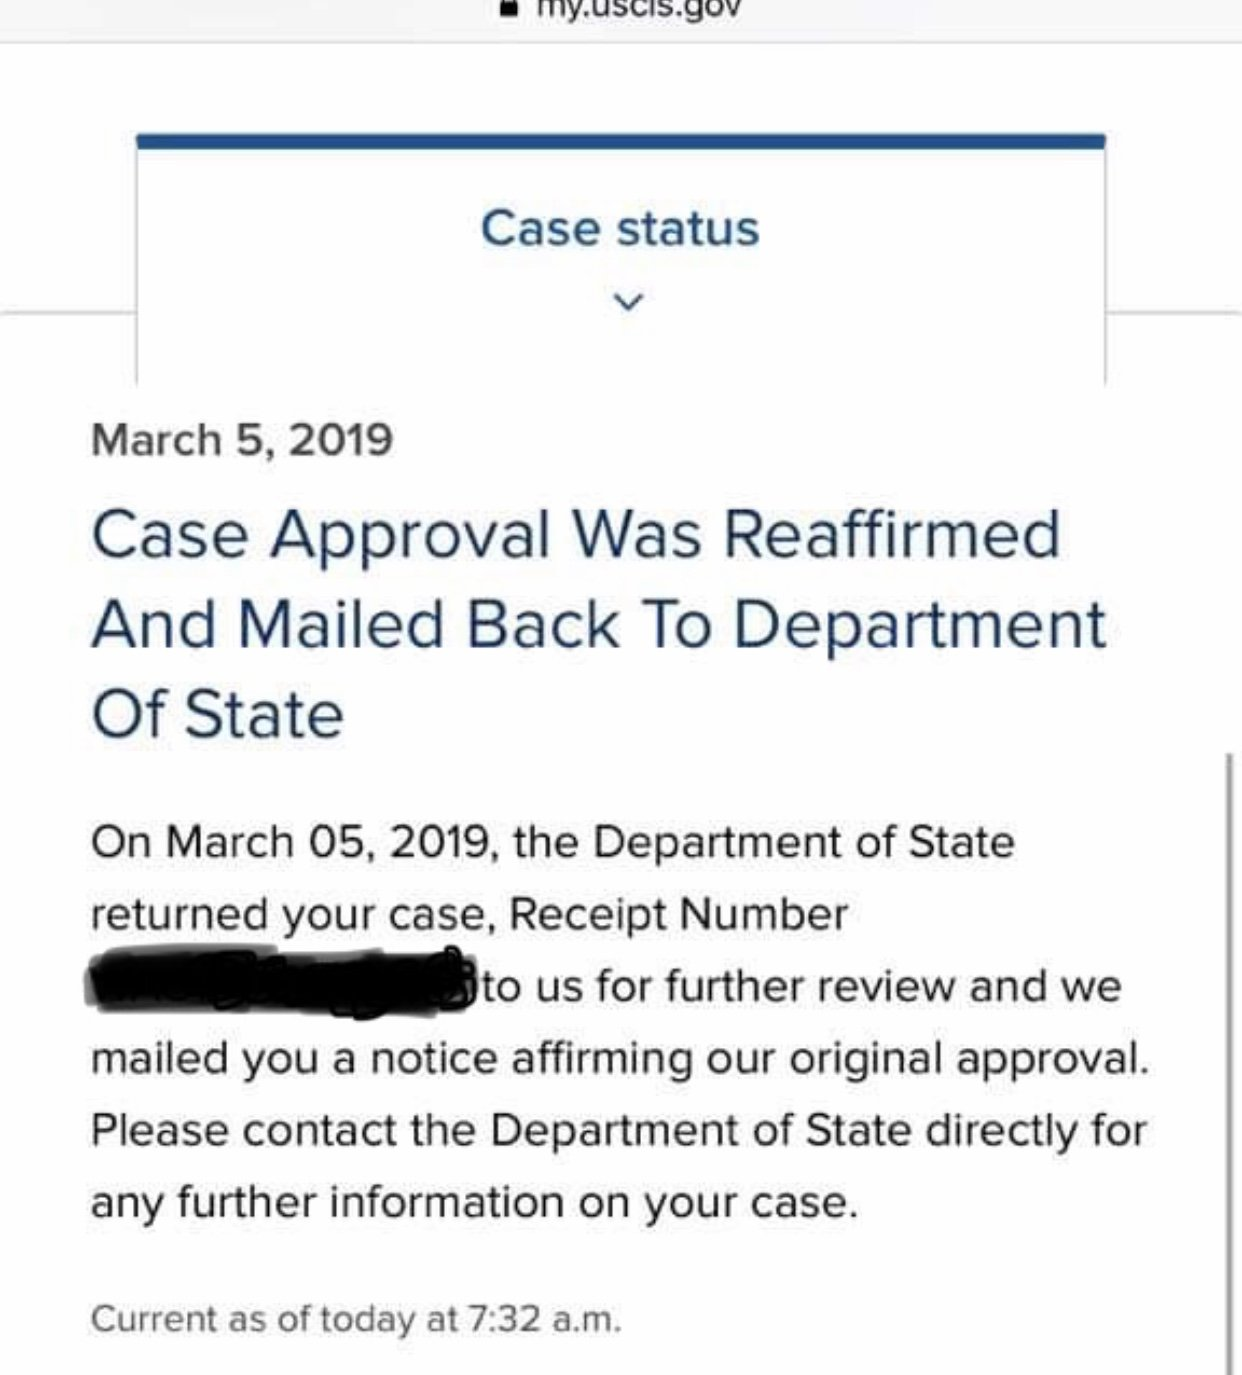 Uscis Case Status Approved